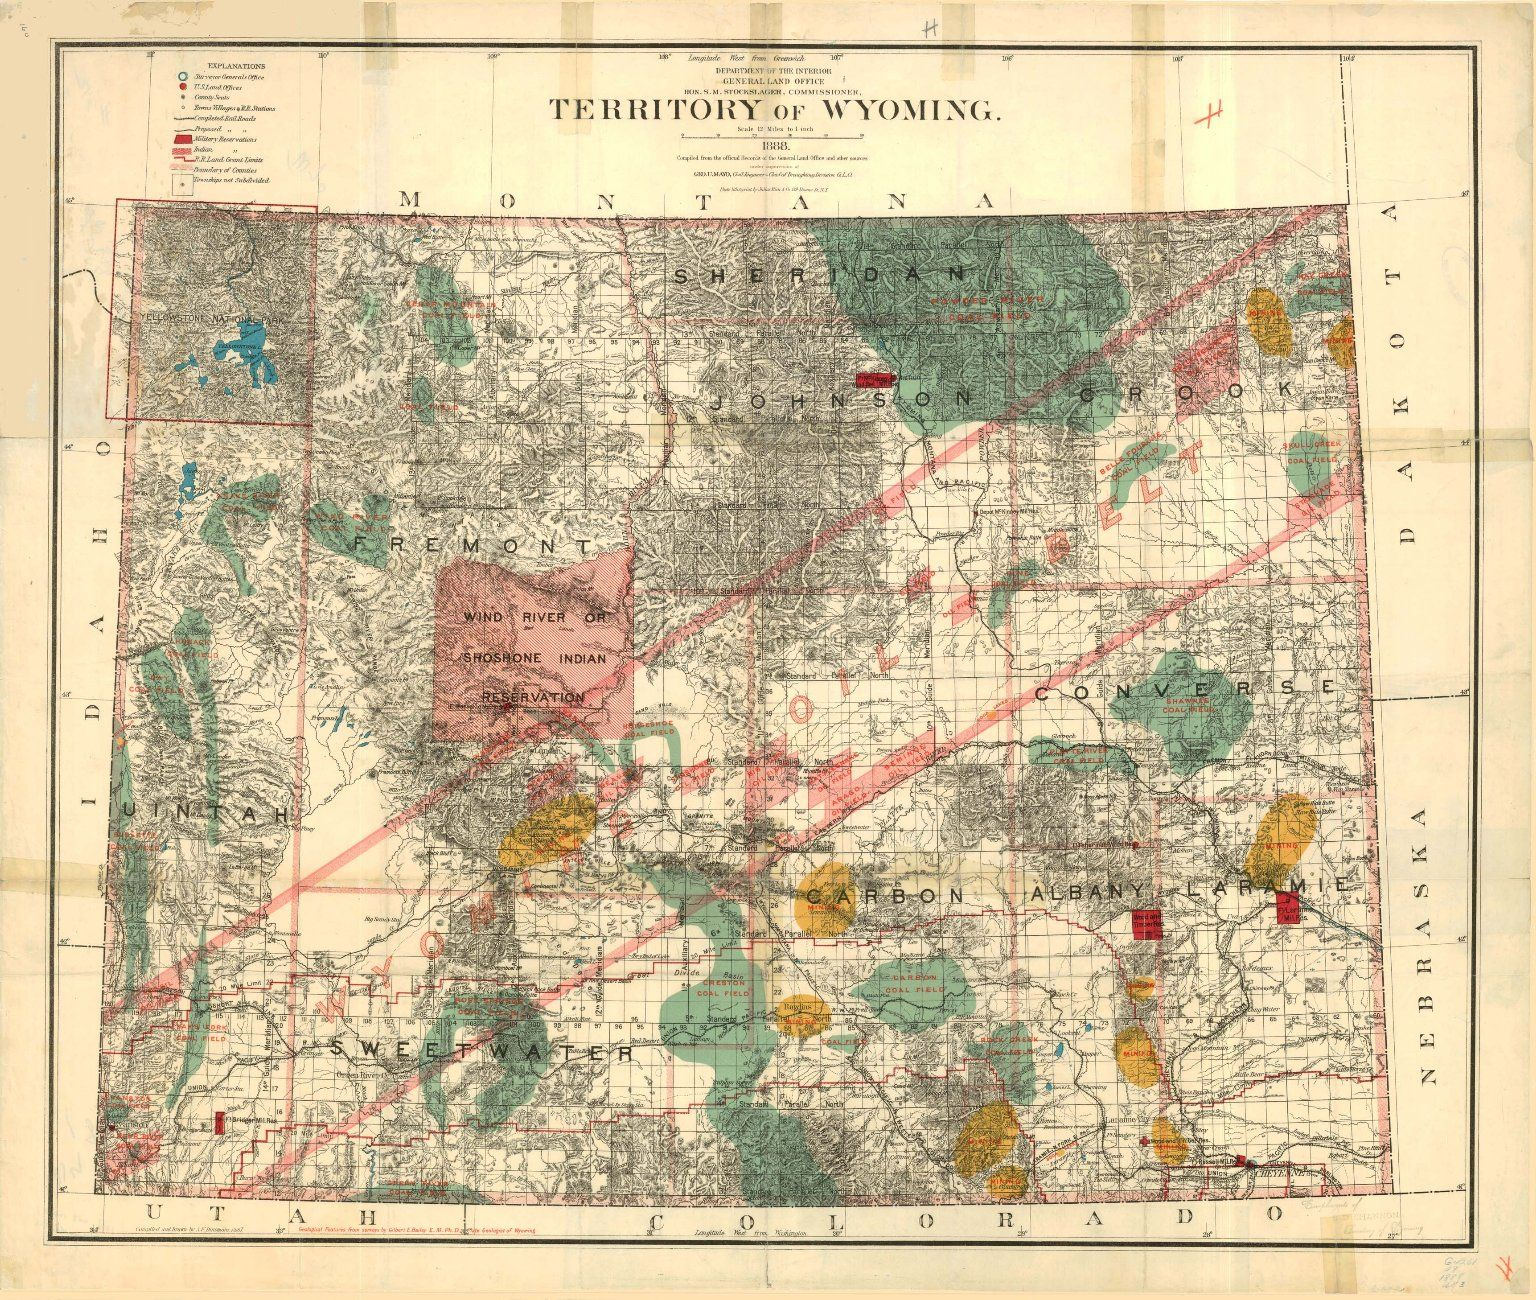 1888 Territory of Wyoming map by the US Department of the Interior on